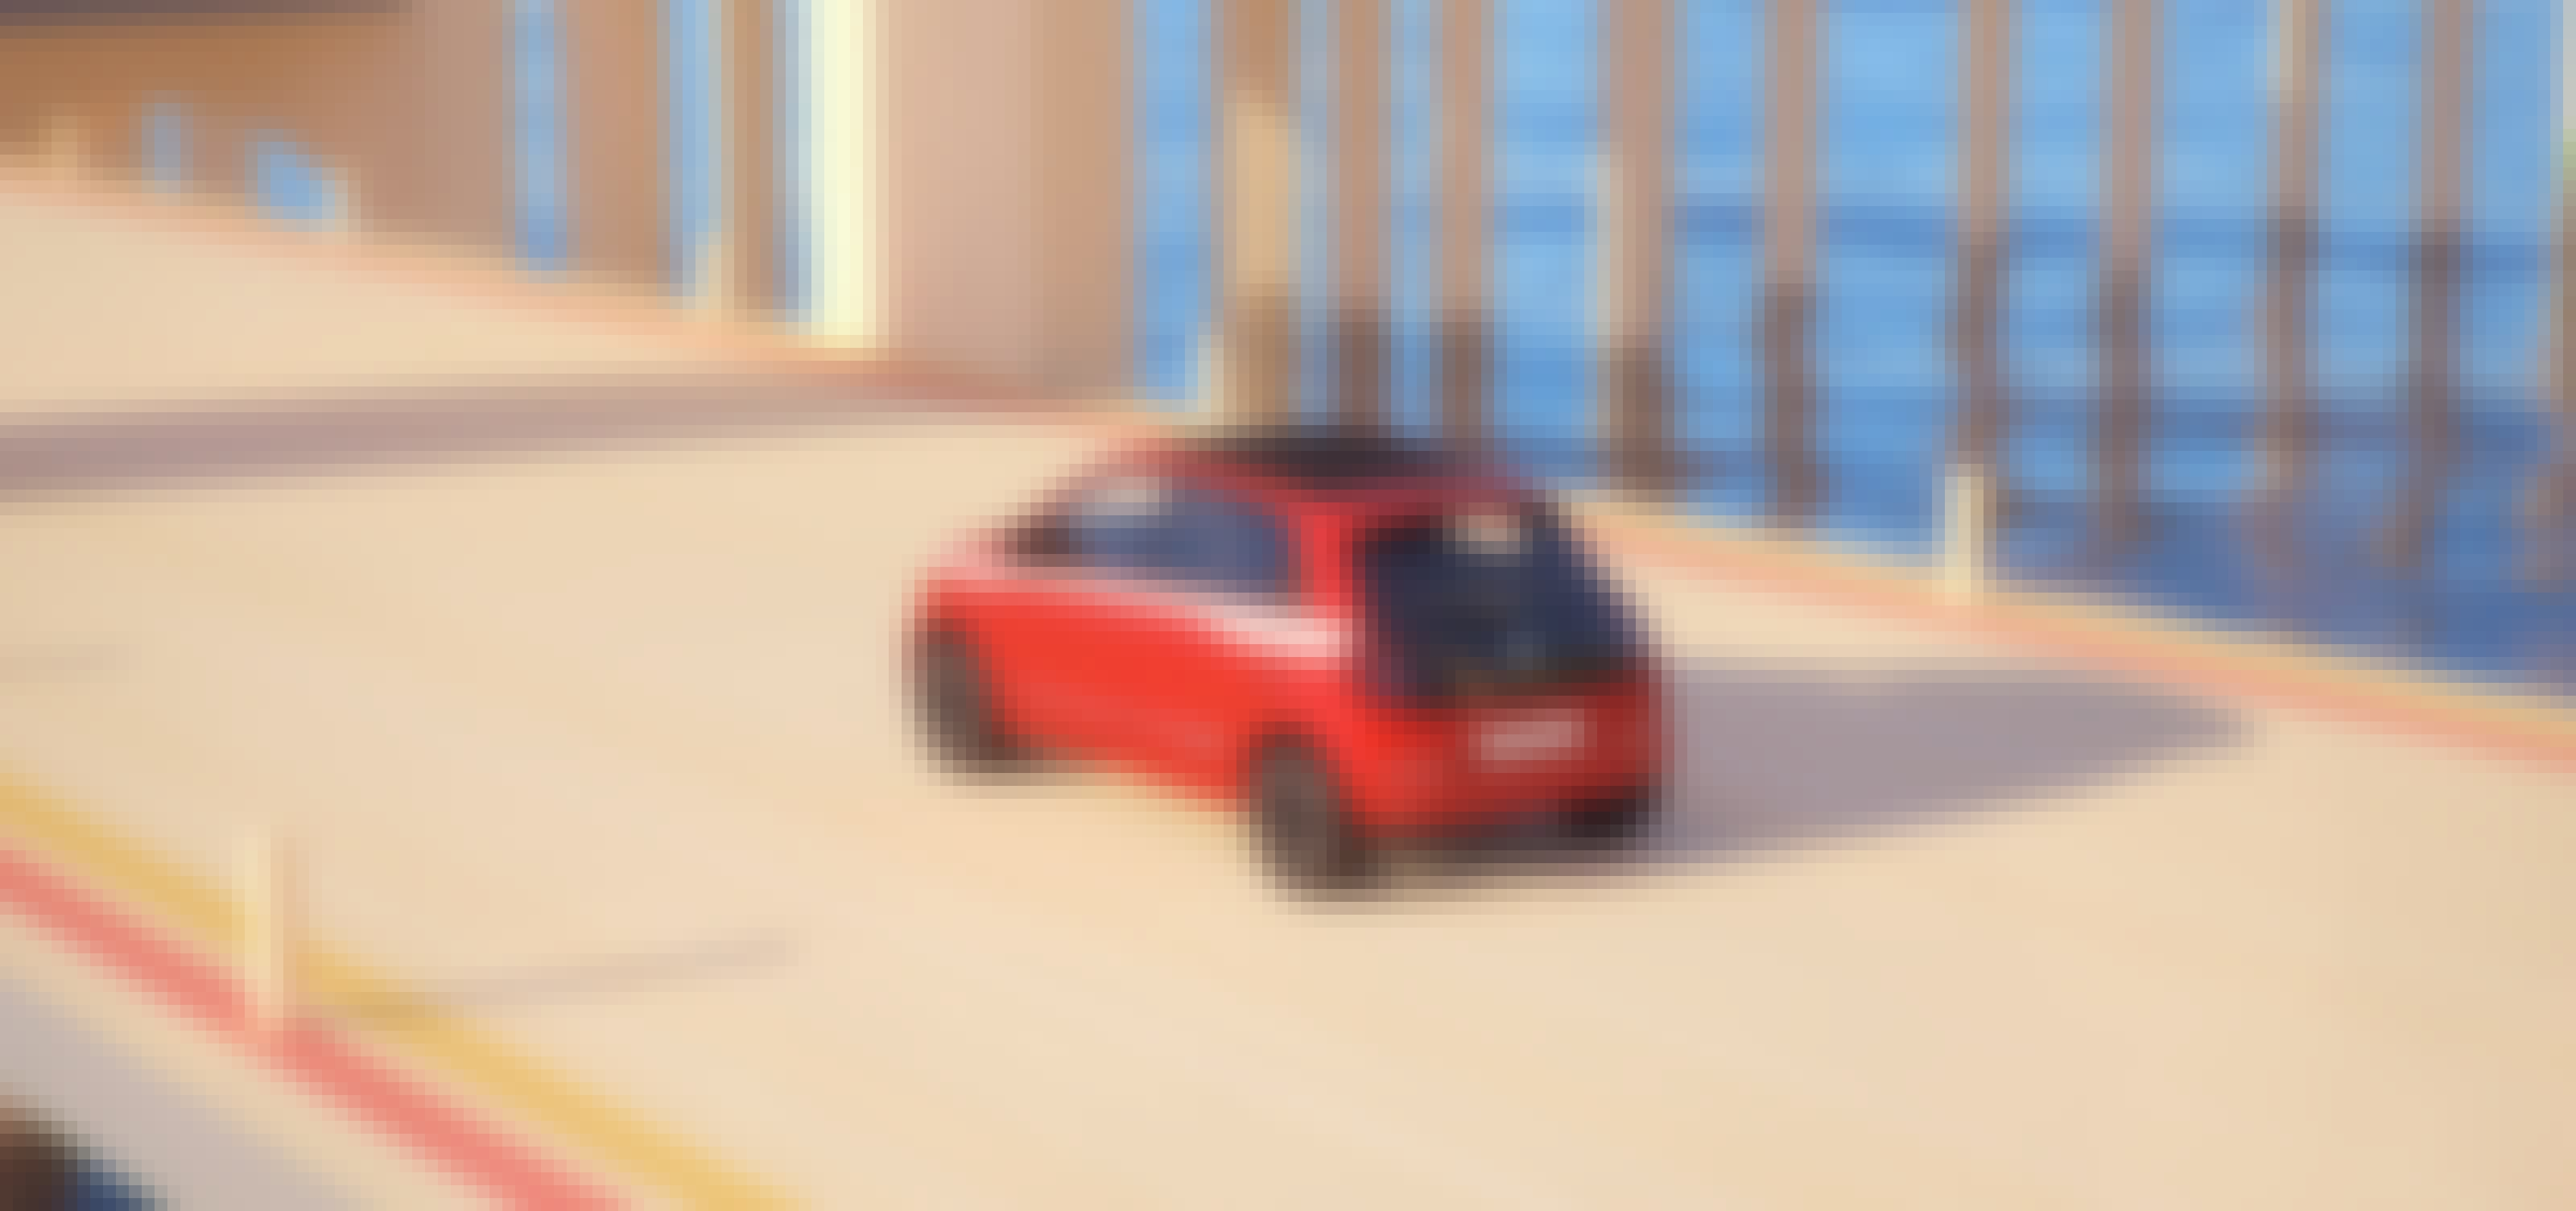 A red Renault Twingo model on the road.